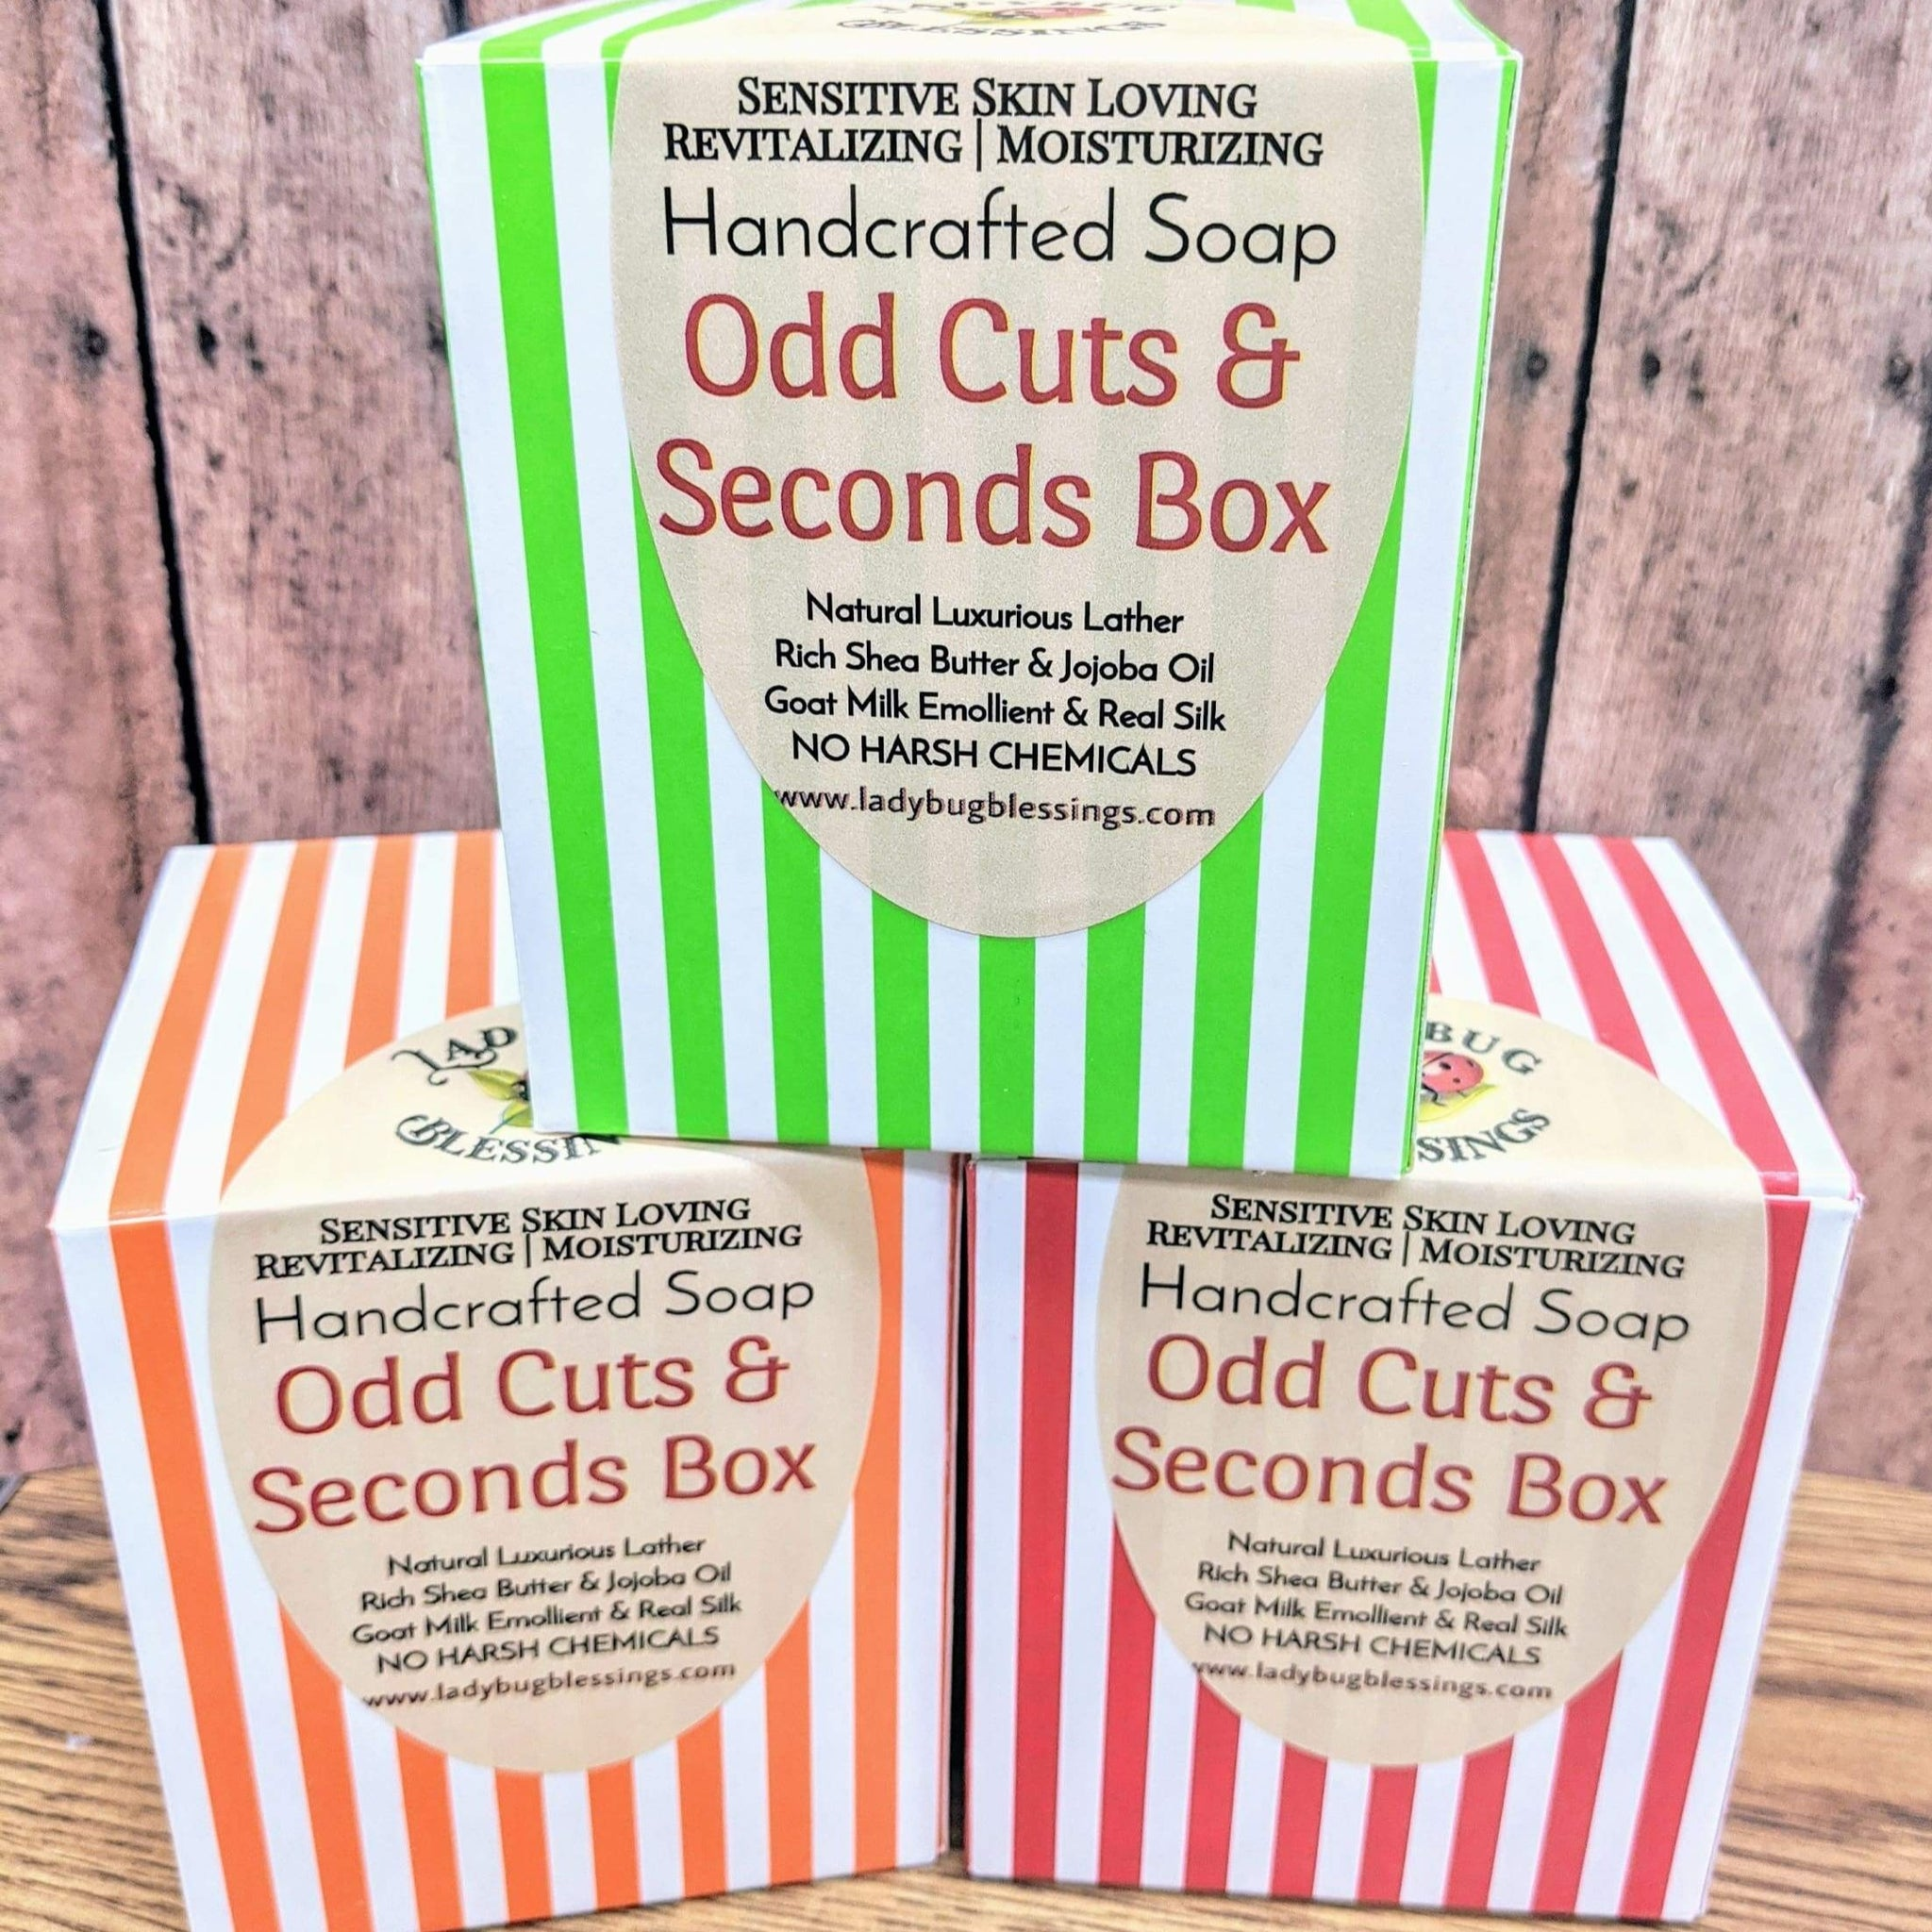 Handcrafted Soap - Ends & Odd Cuts discount Mystery Box!